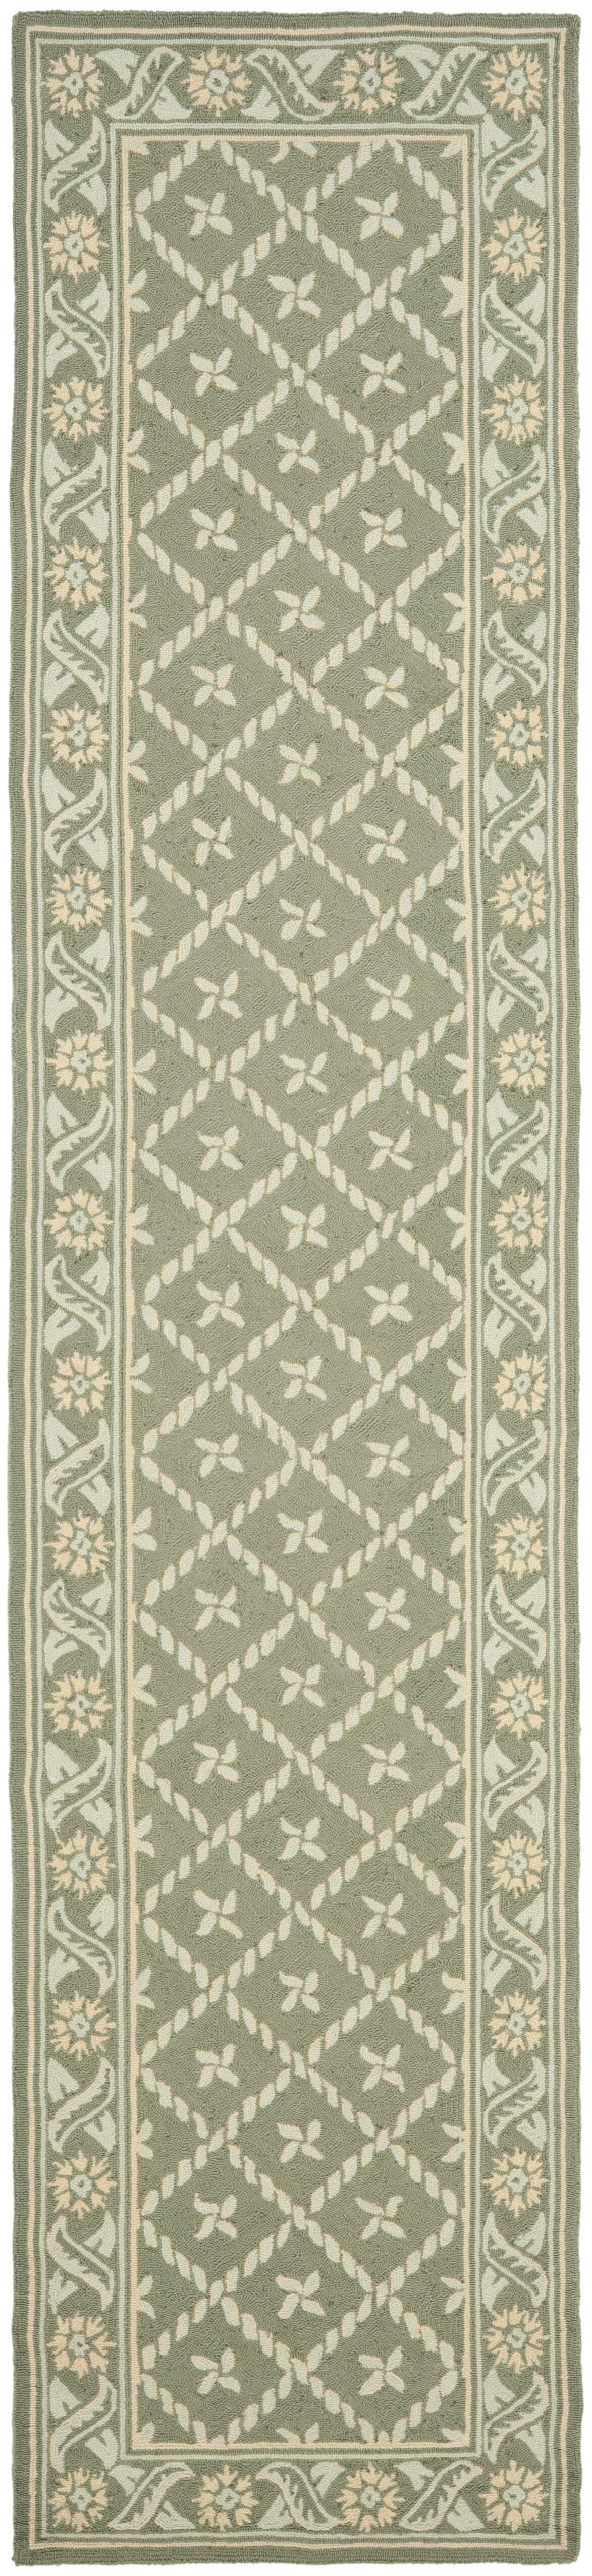 Pipers Green Area Rug Rug Size: Runner 2'3